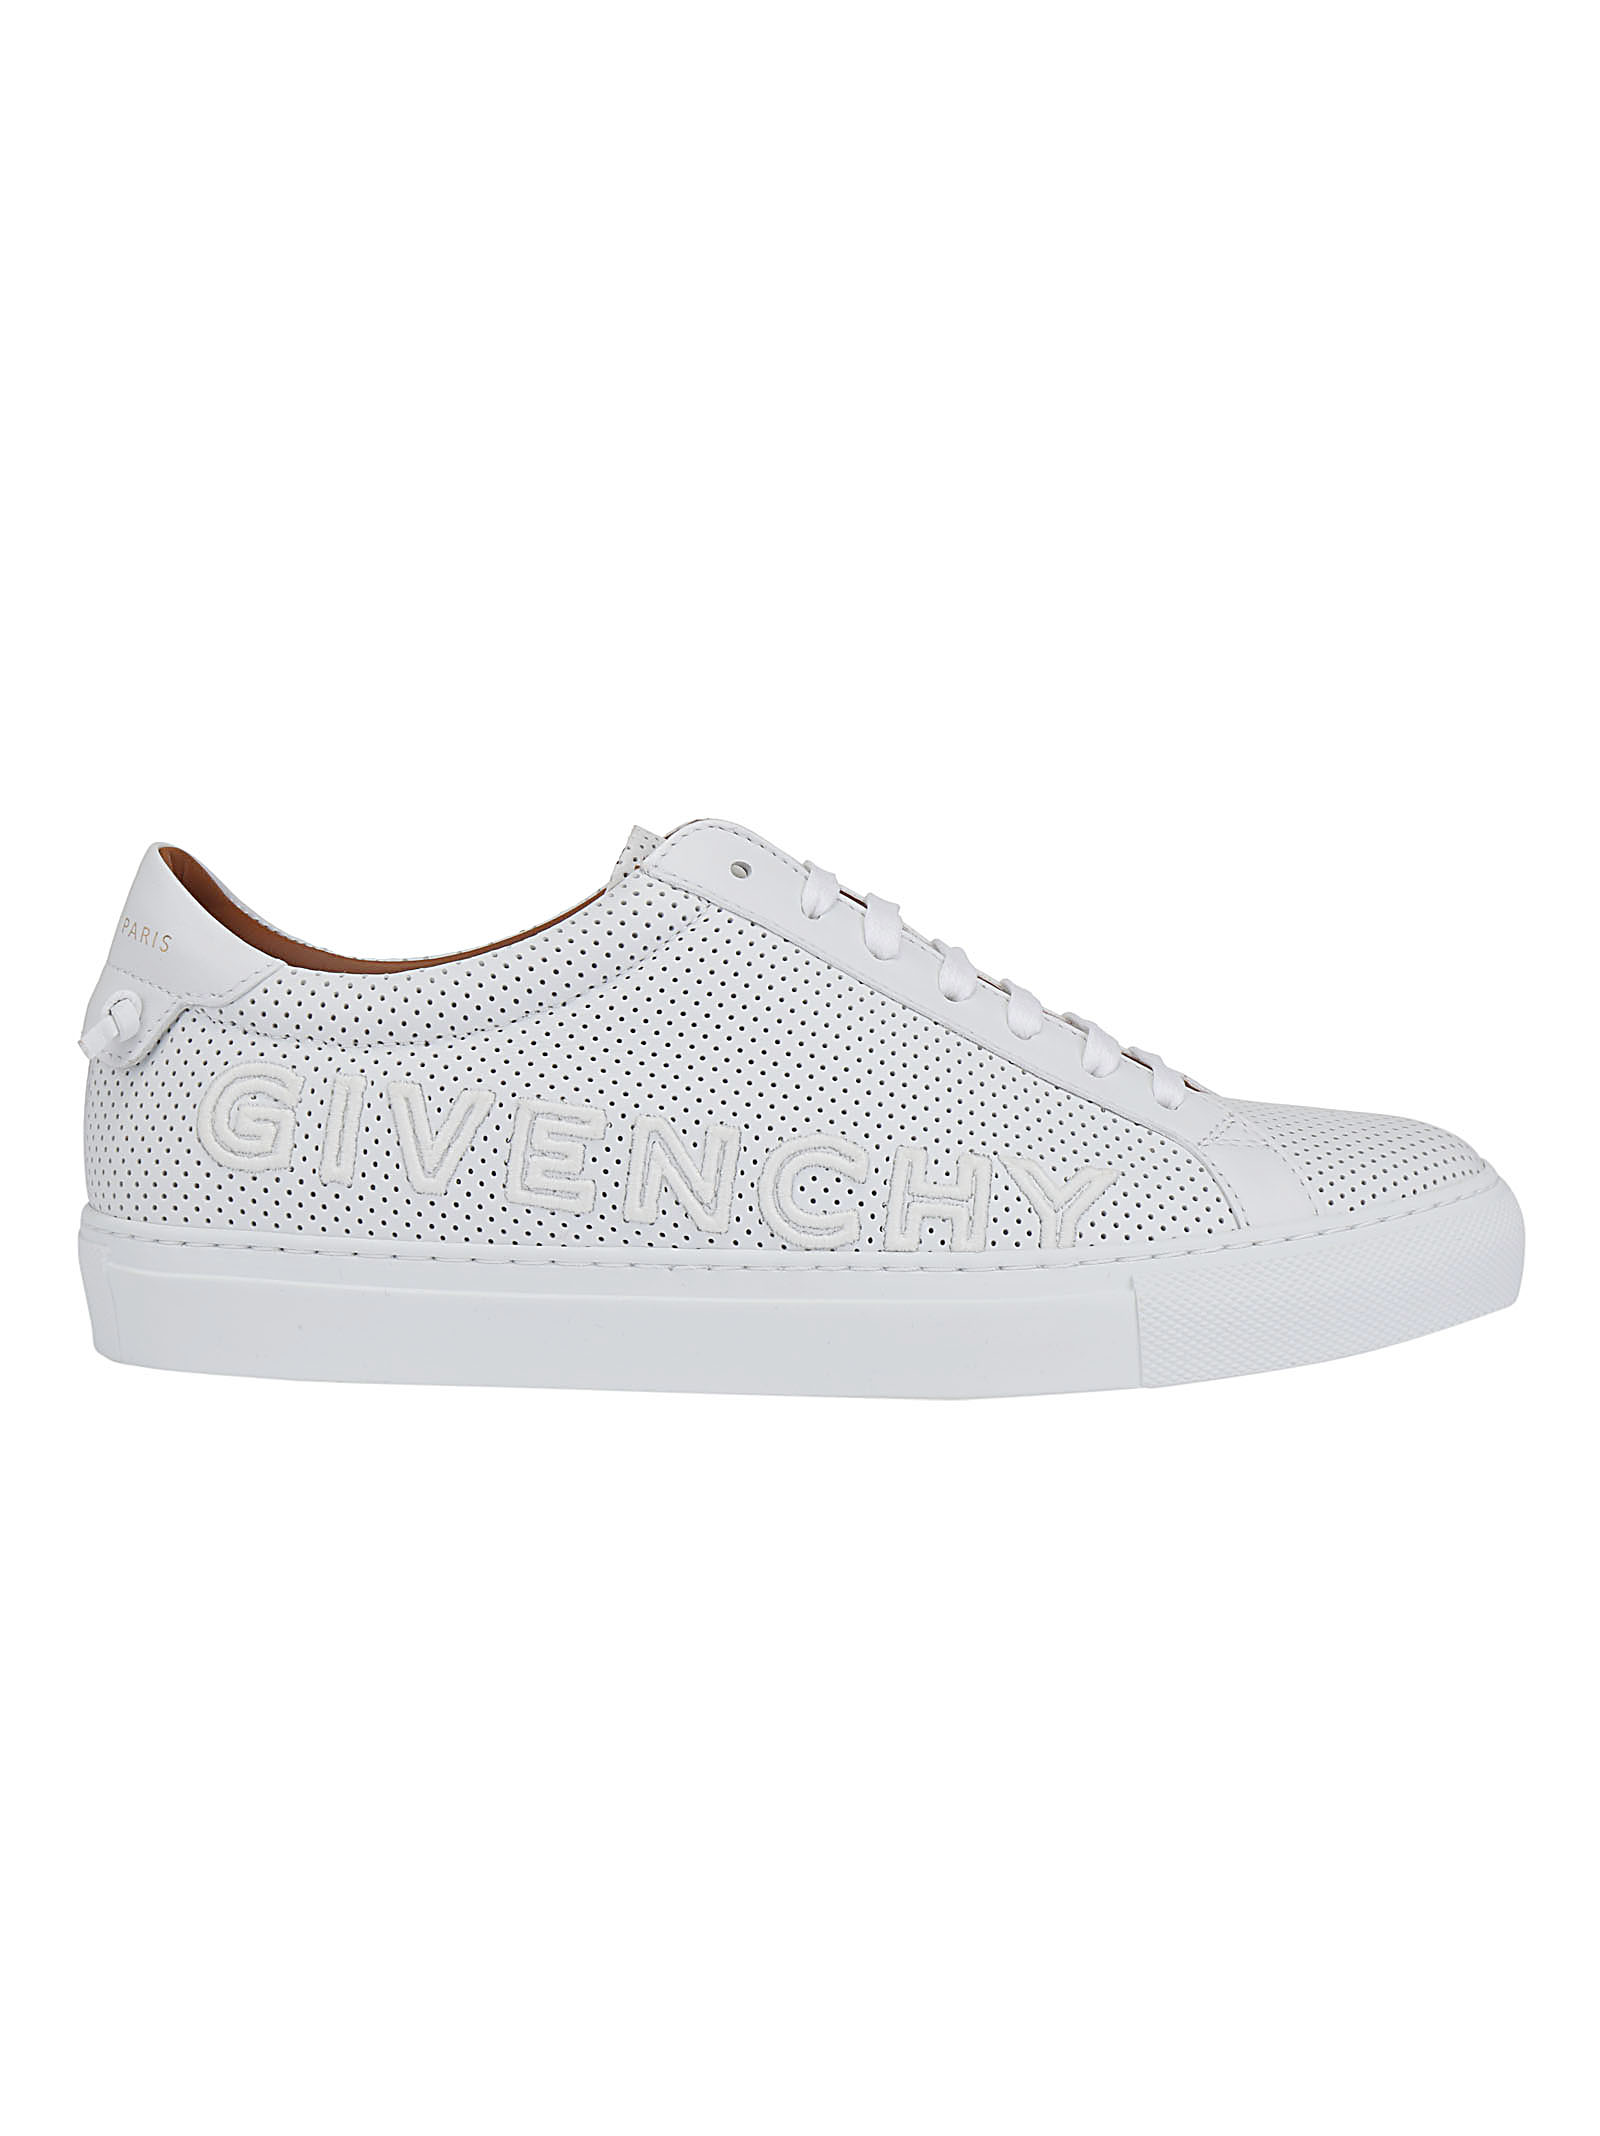 Details about Givenchy Women's Shoes Sneakers BE0003E0D4 | White | Fall Winter 1920